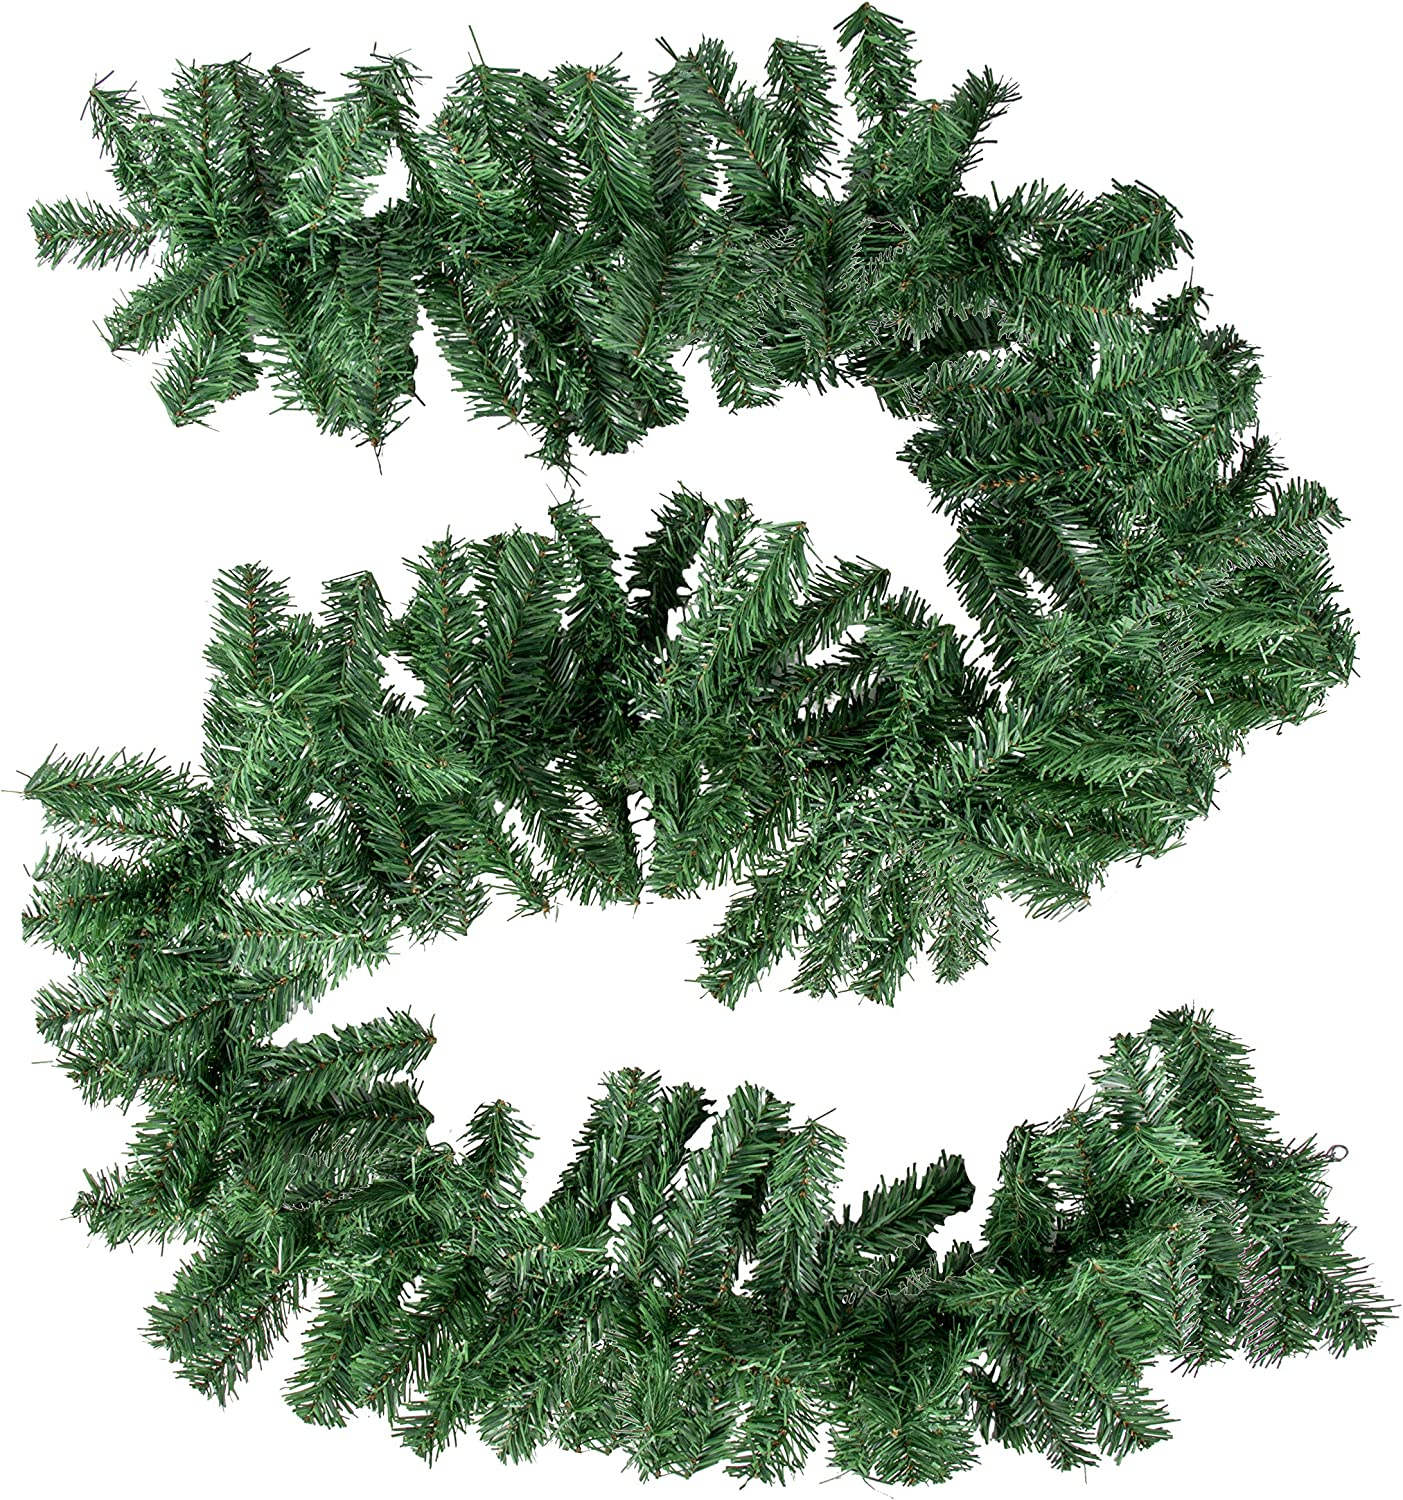 Juvale Christmas Garlands for Mantel Decorations, DIY Wreath, Holiday Decor (8.8 Ft, 3 Pack)